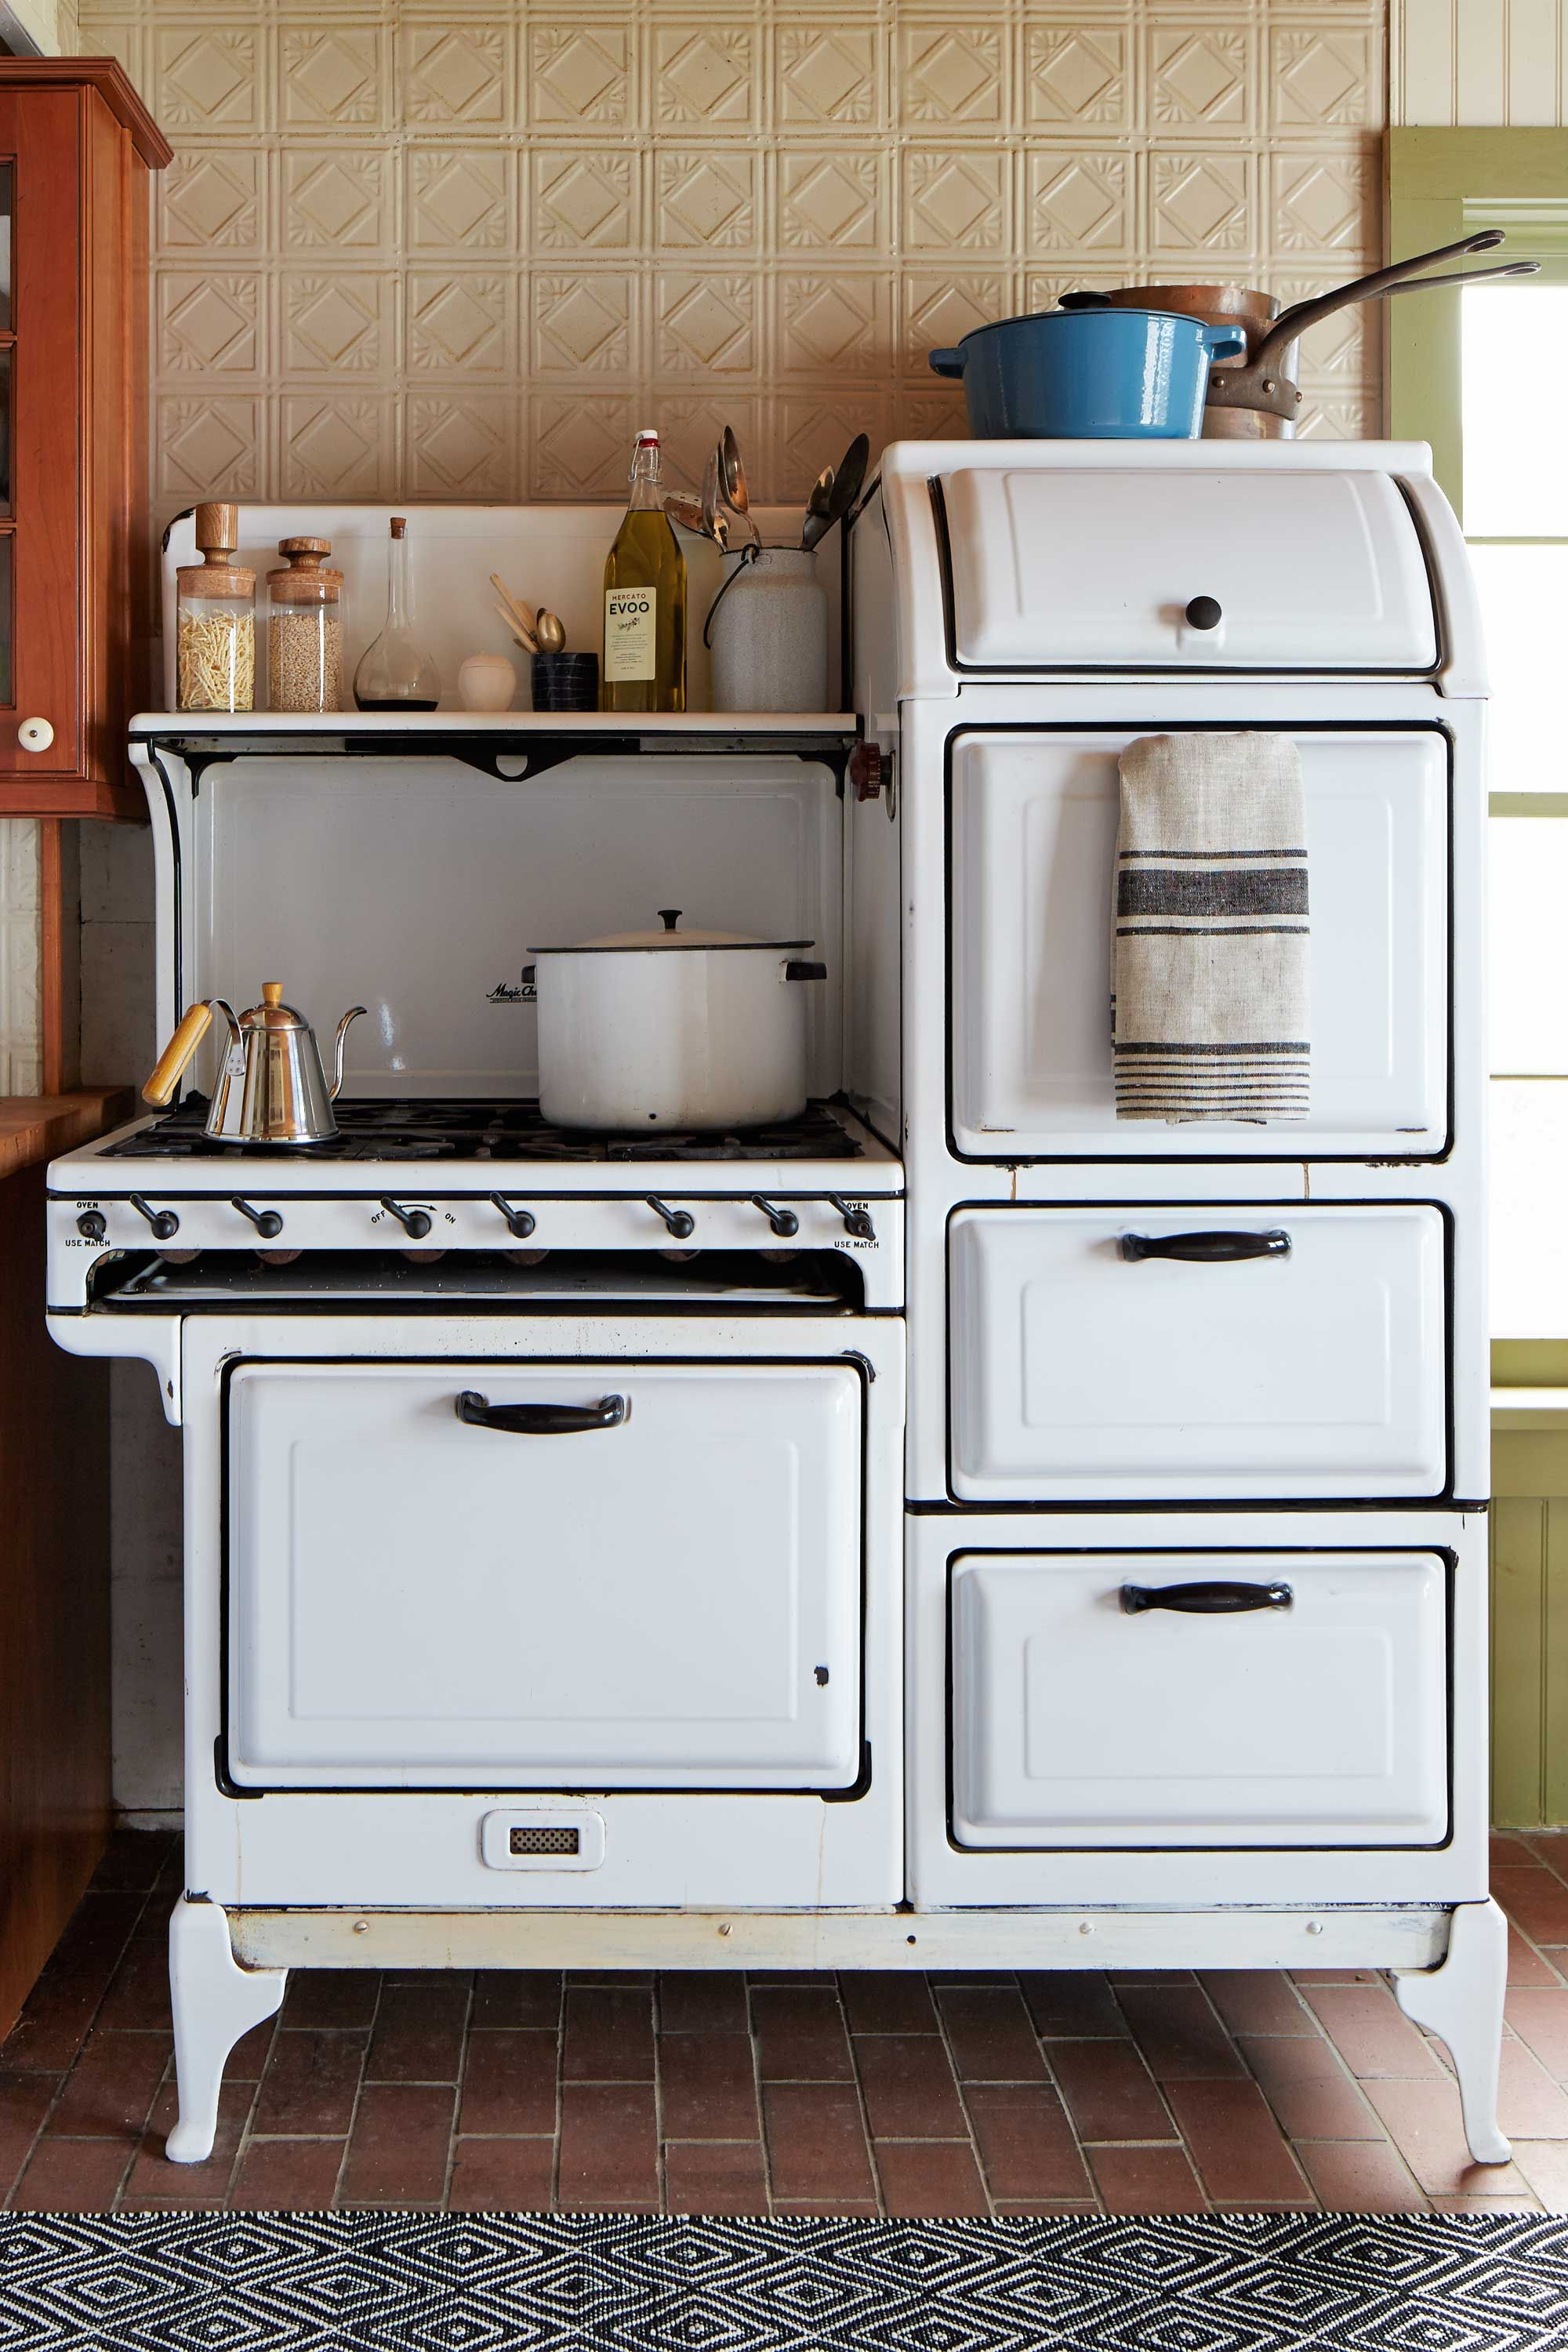 Max Kim Bee. Stoves With Multiple Compartments